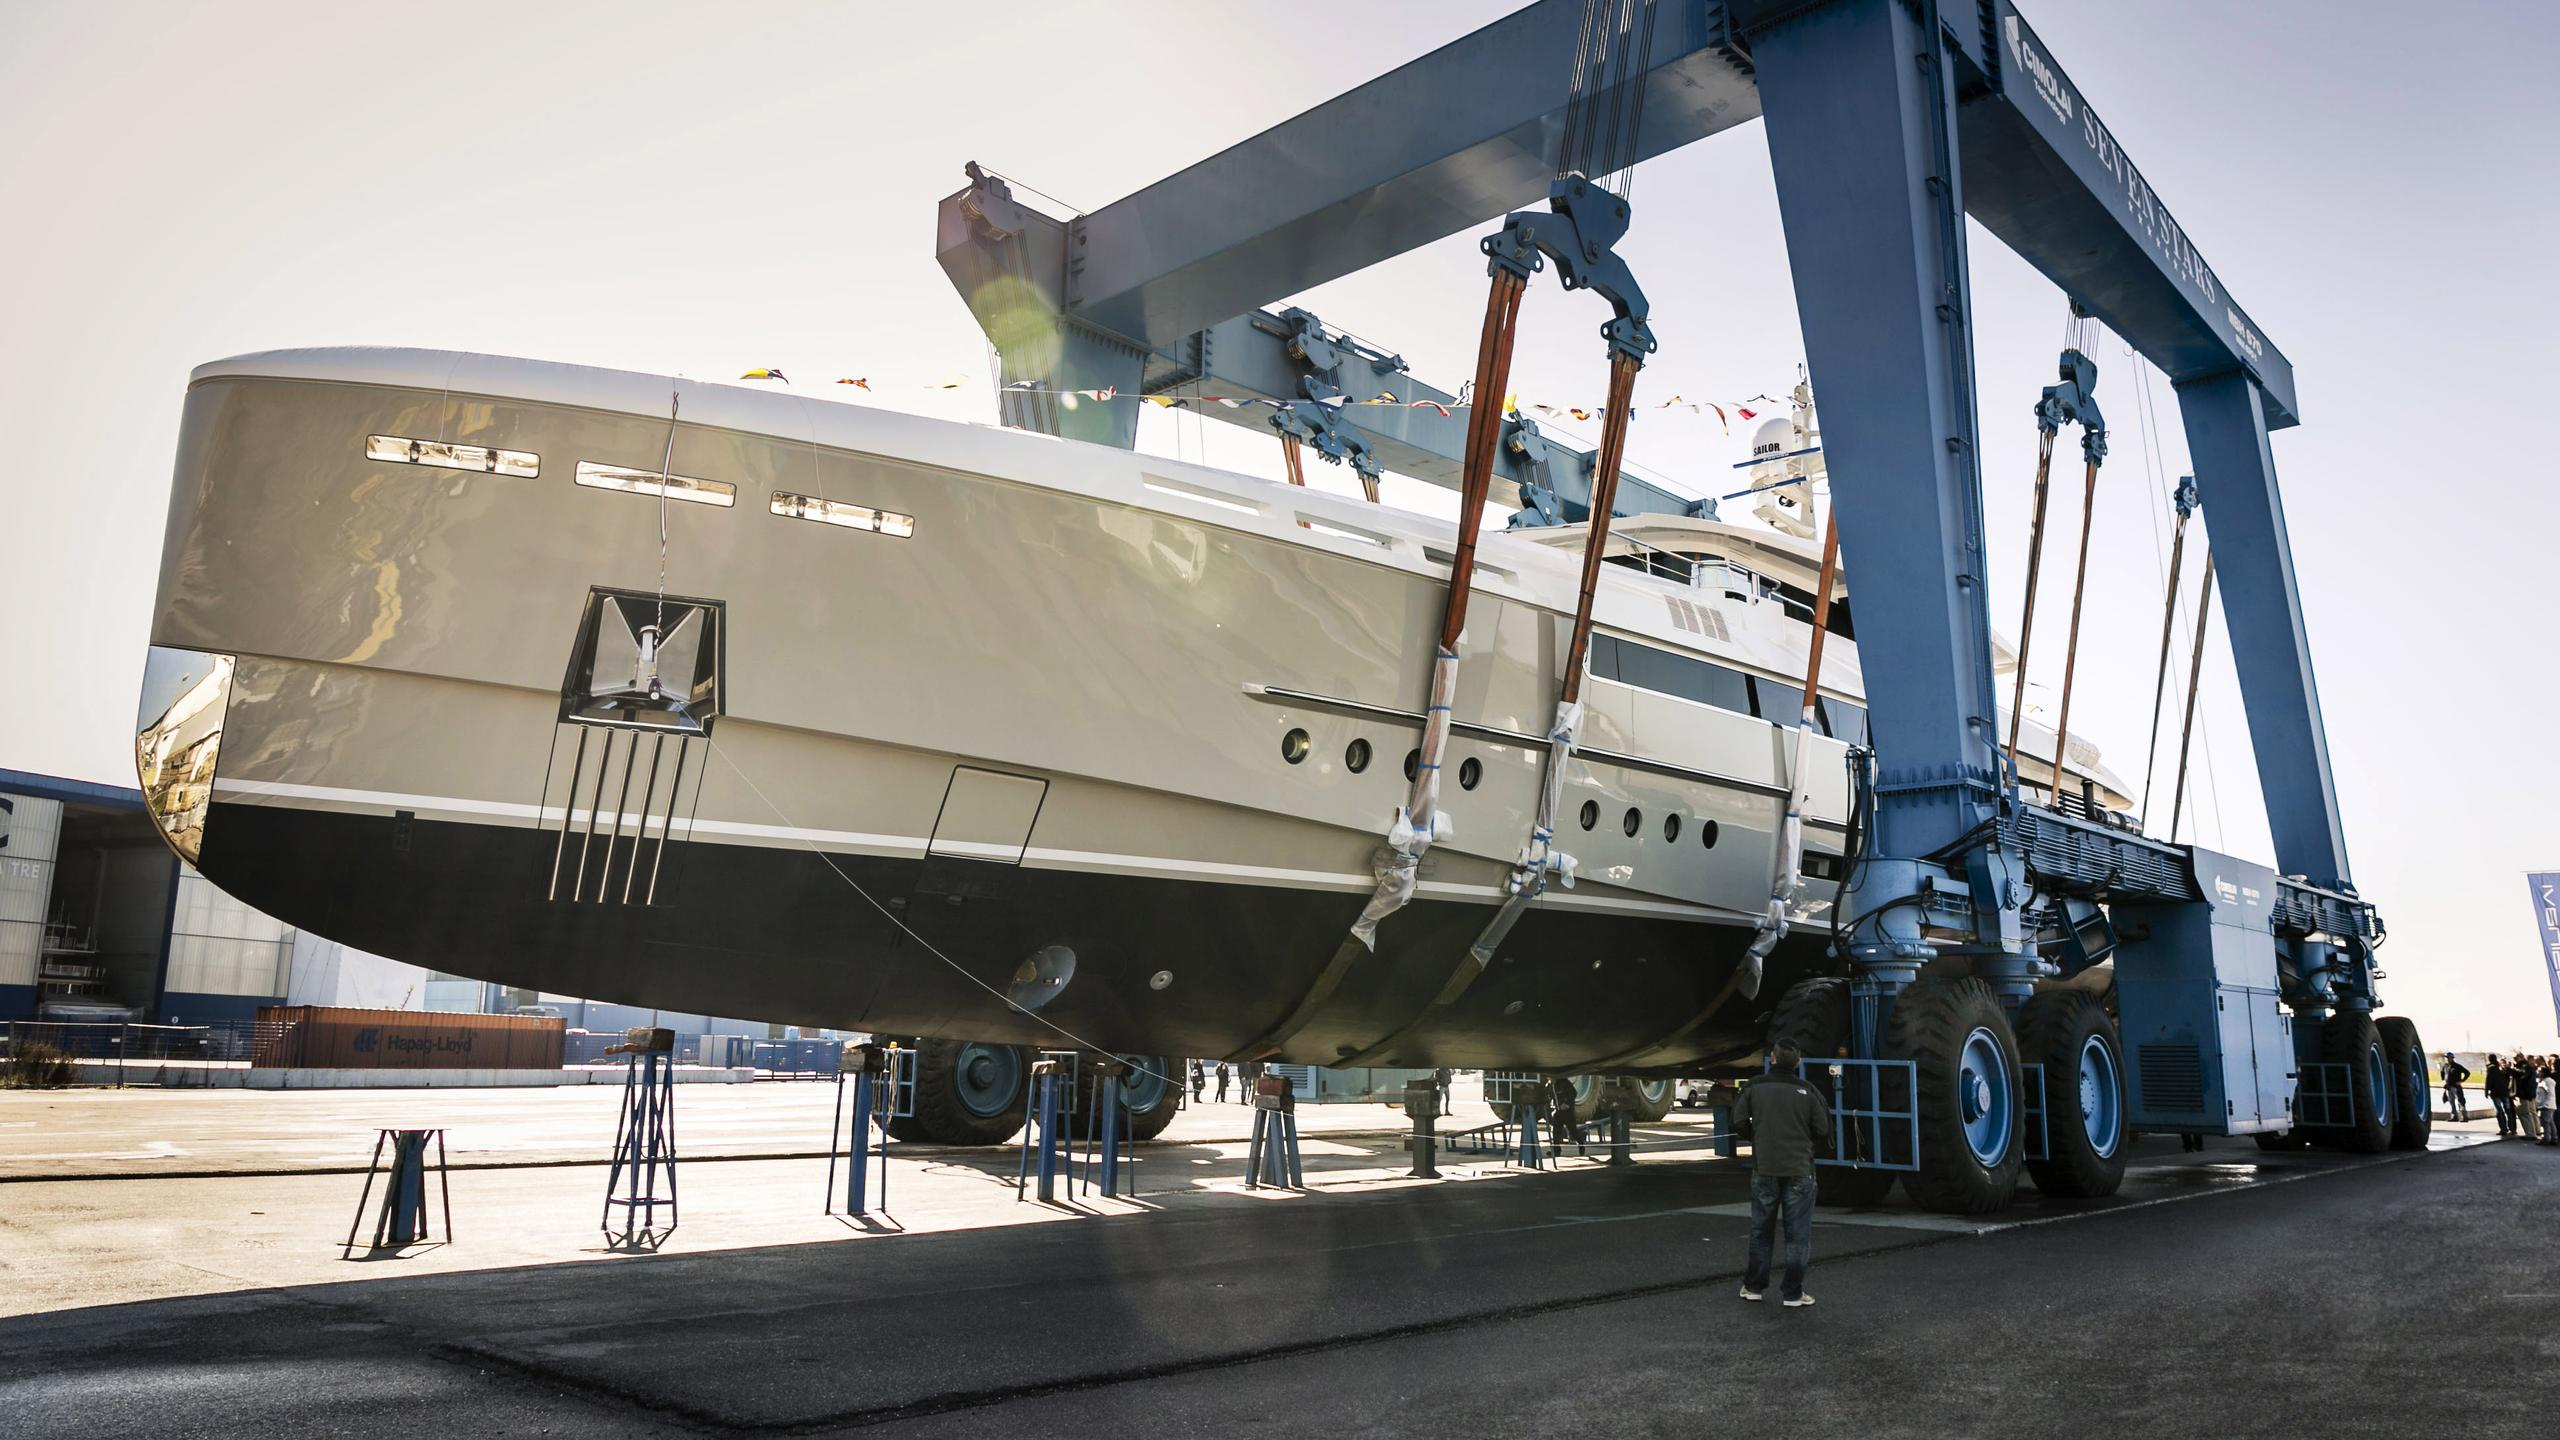 endeavour ii motoryacht rossinavi 50m 2017 half profile launch